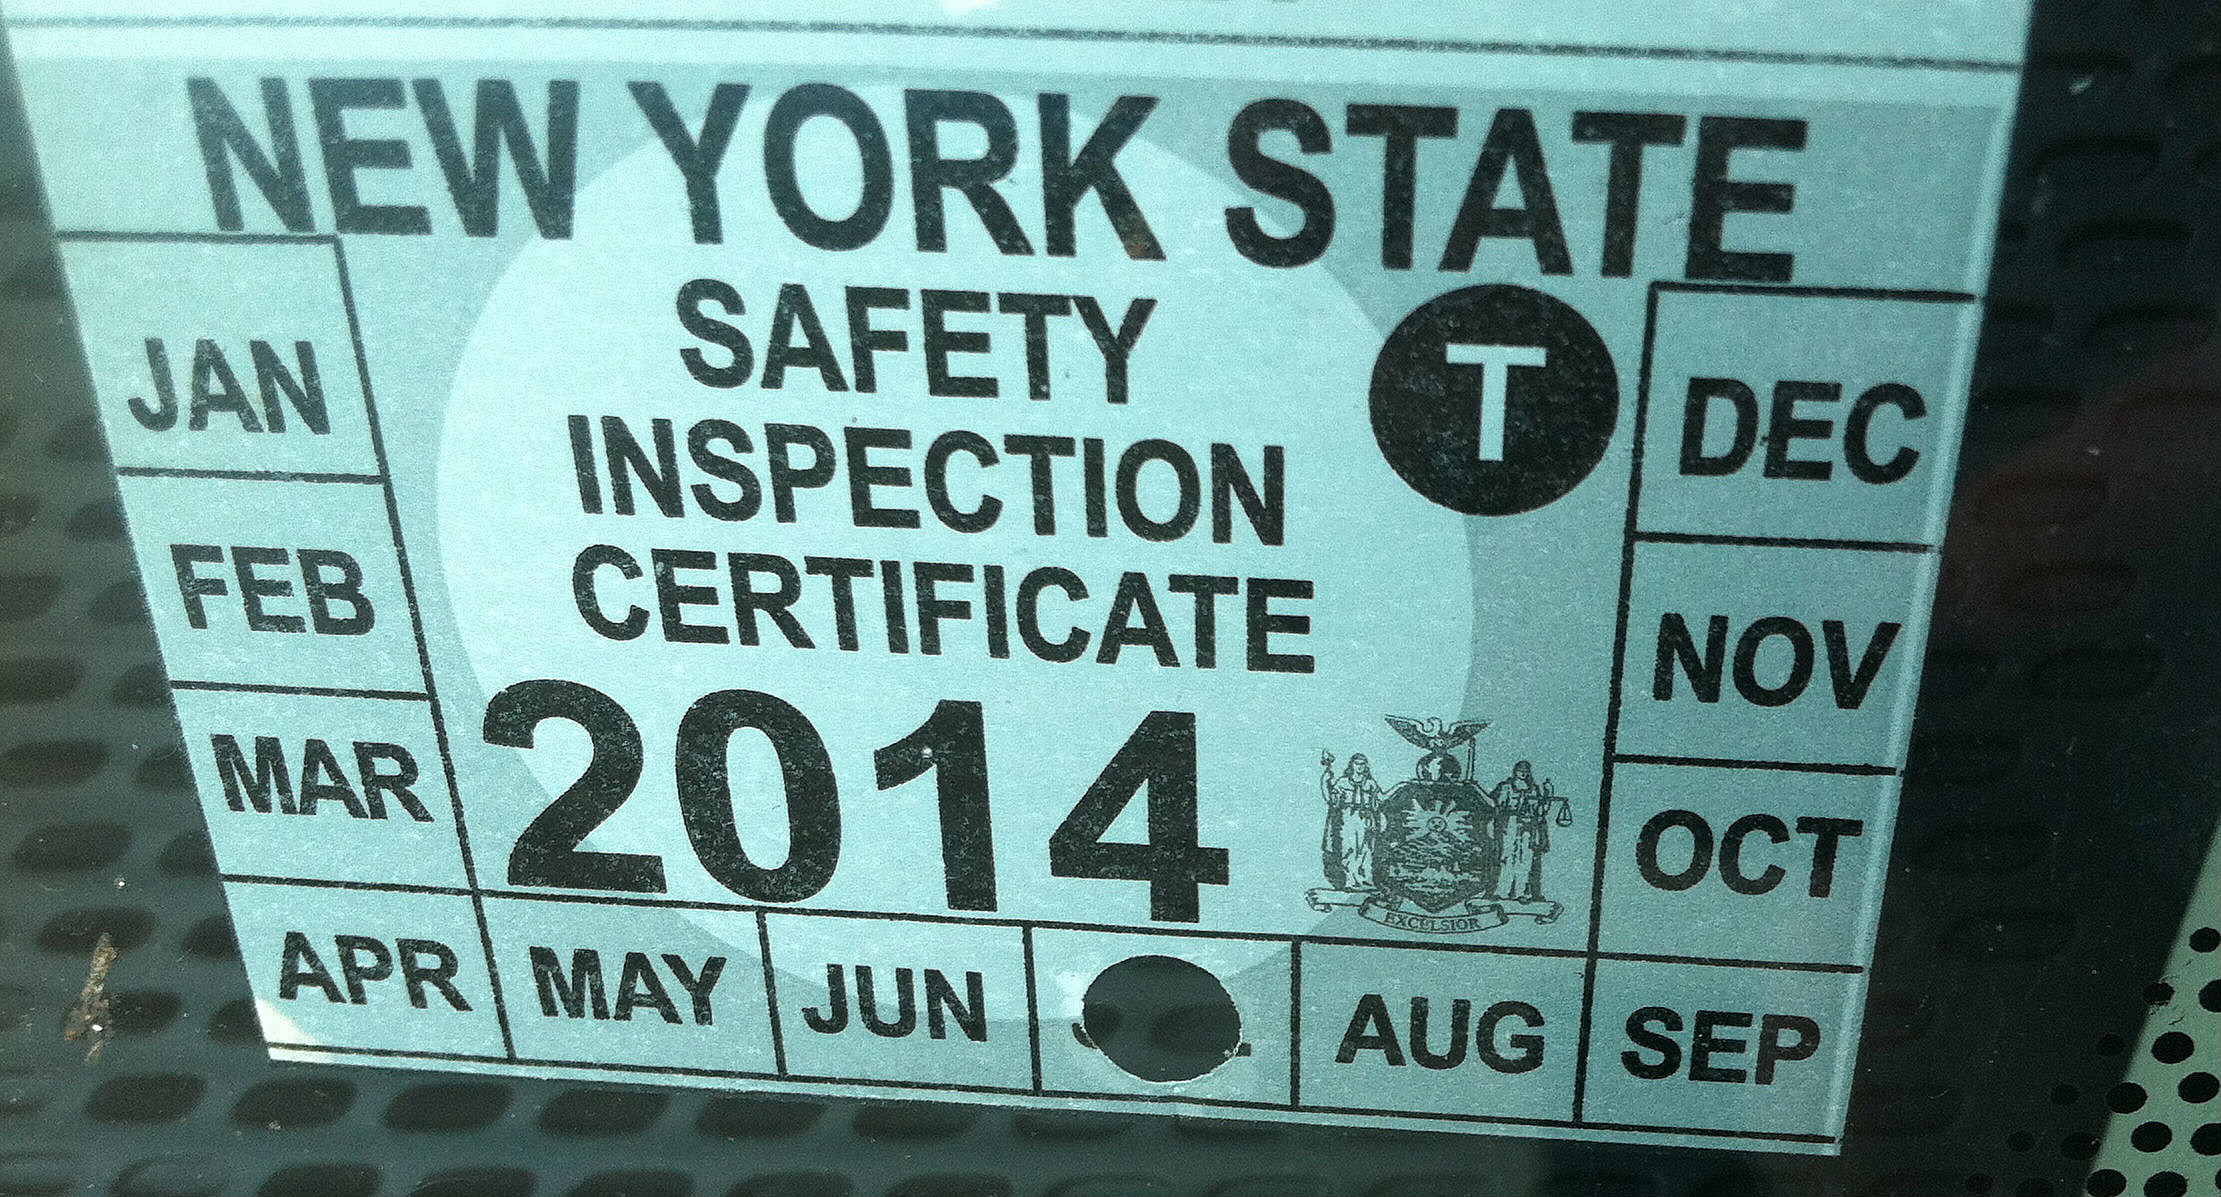 Nys dmv inspection sticker satu sticker for New york state department of motor vehicles handicap parking permit